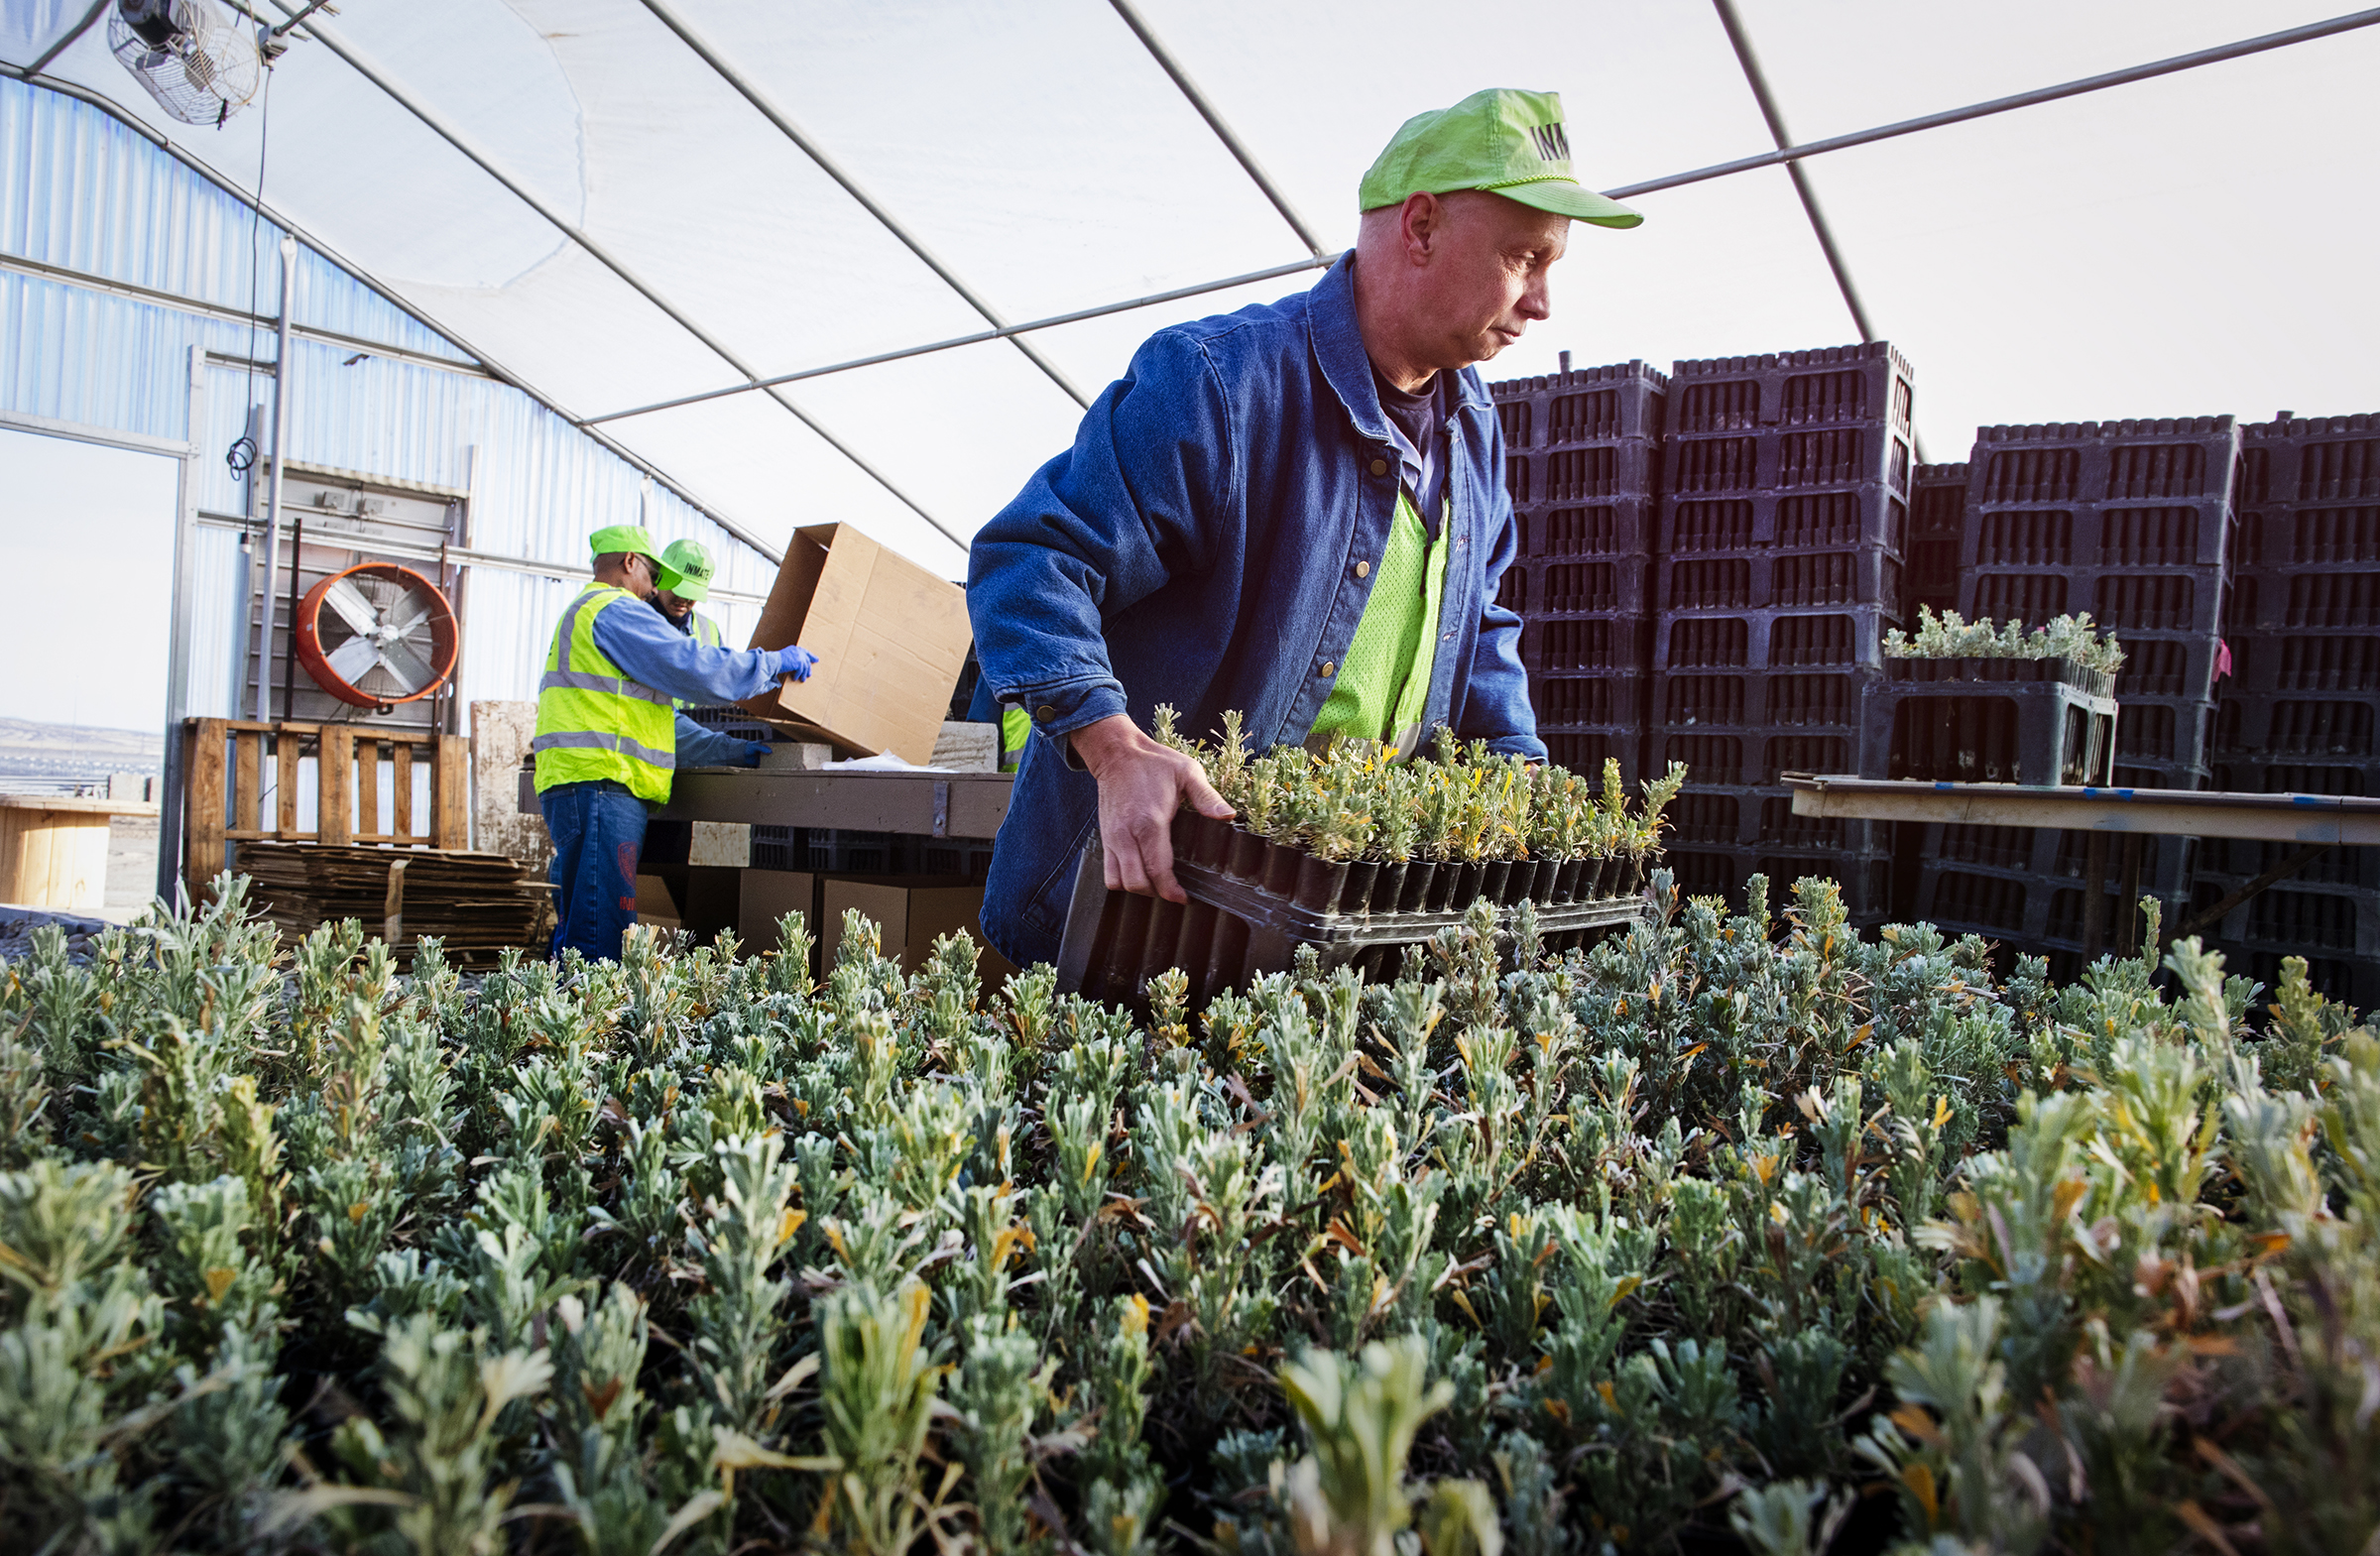 Shawn Virgillo prepares to pack up a tray of sagebrush seedlings in the Snake River Correctional Institution greenhouse. Mike Fernandez/Audubon